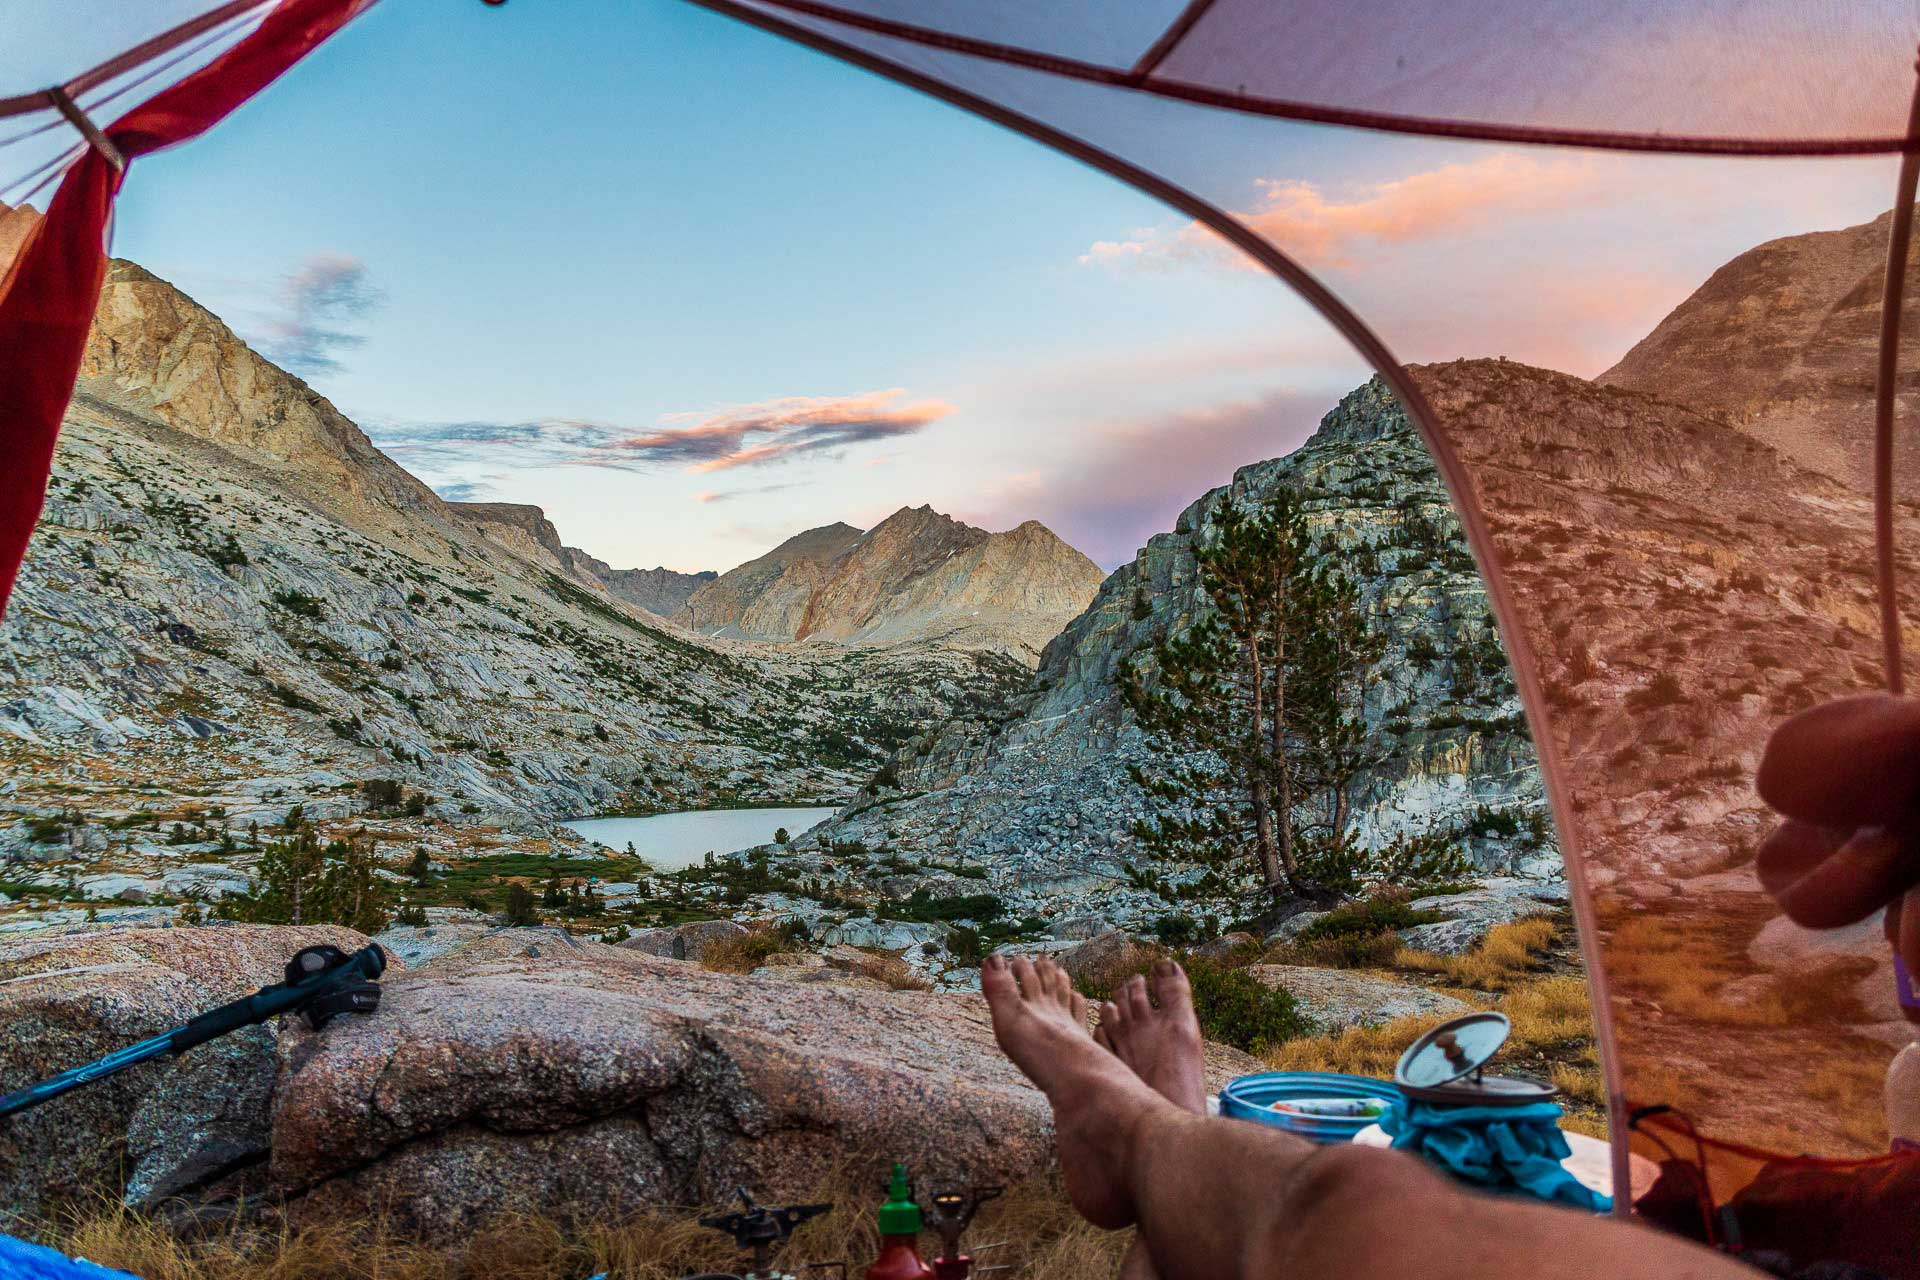 Pacific-Crest-Trail-Lakes-Sunset-PCT-Survey-Gear-2020-Featured-No-Text